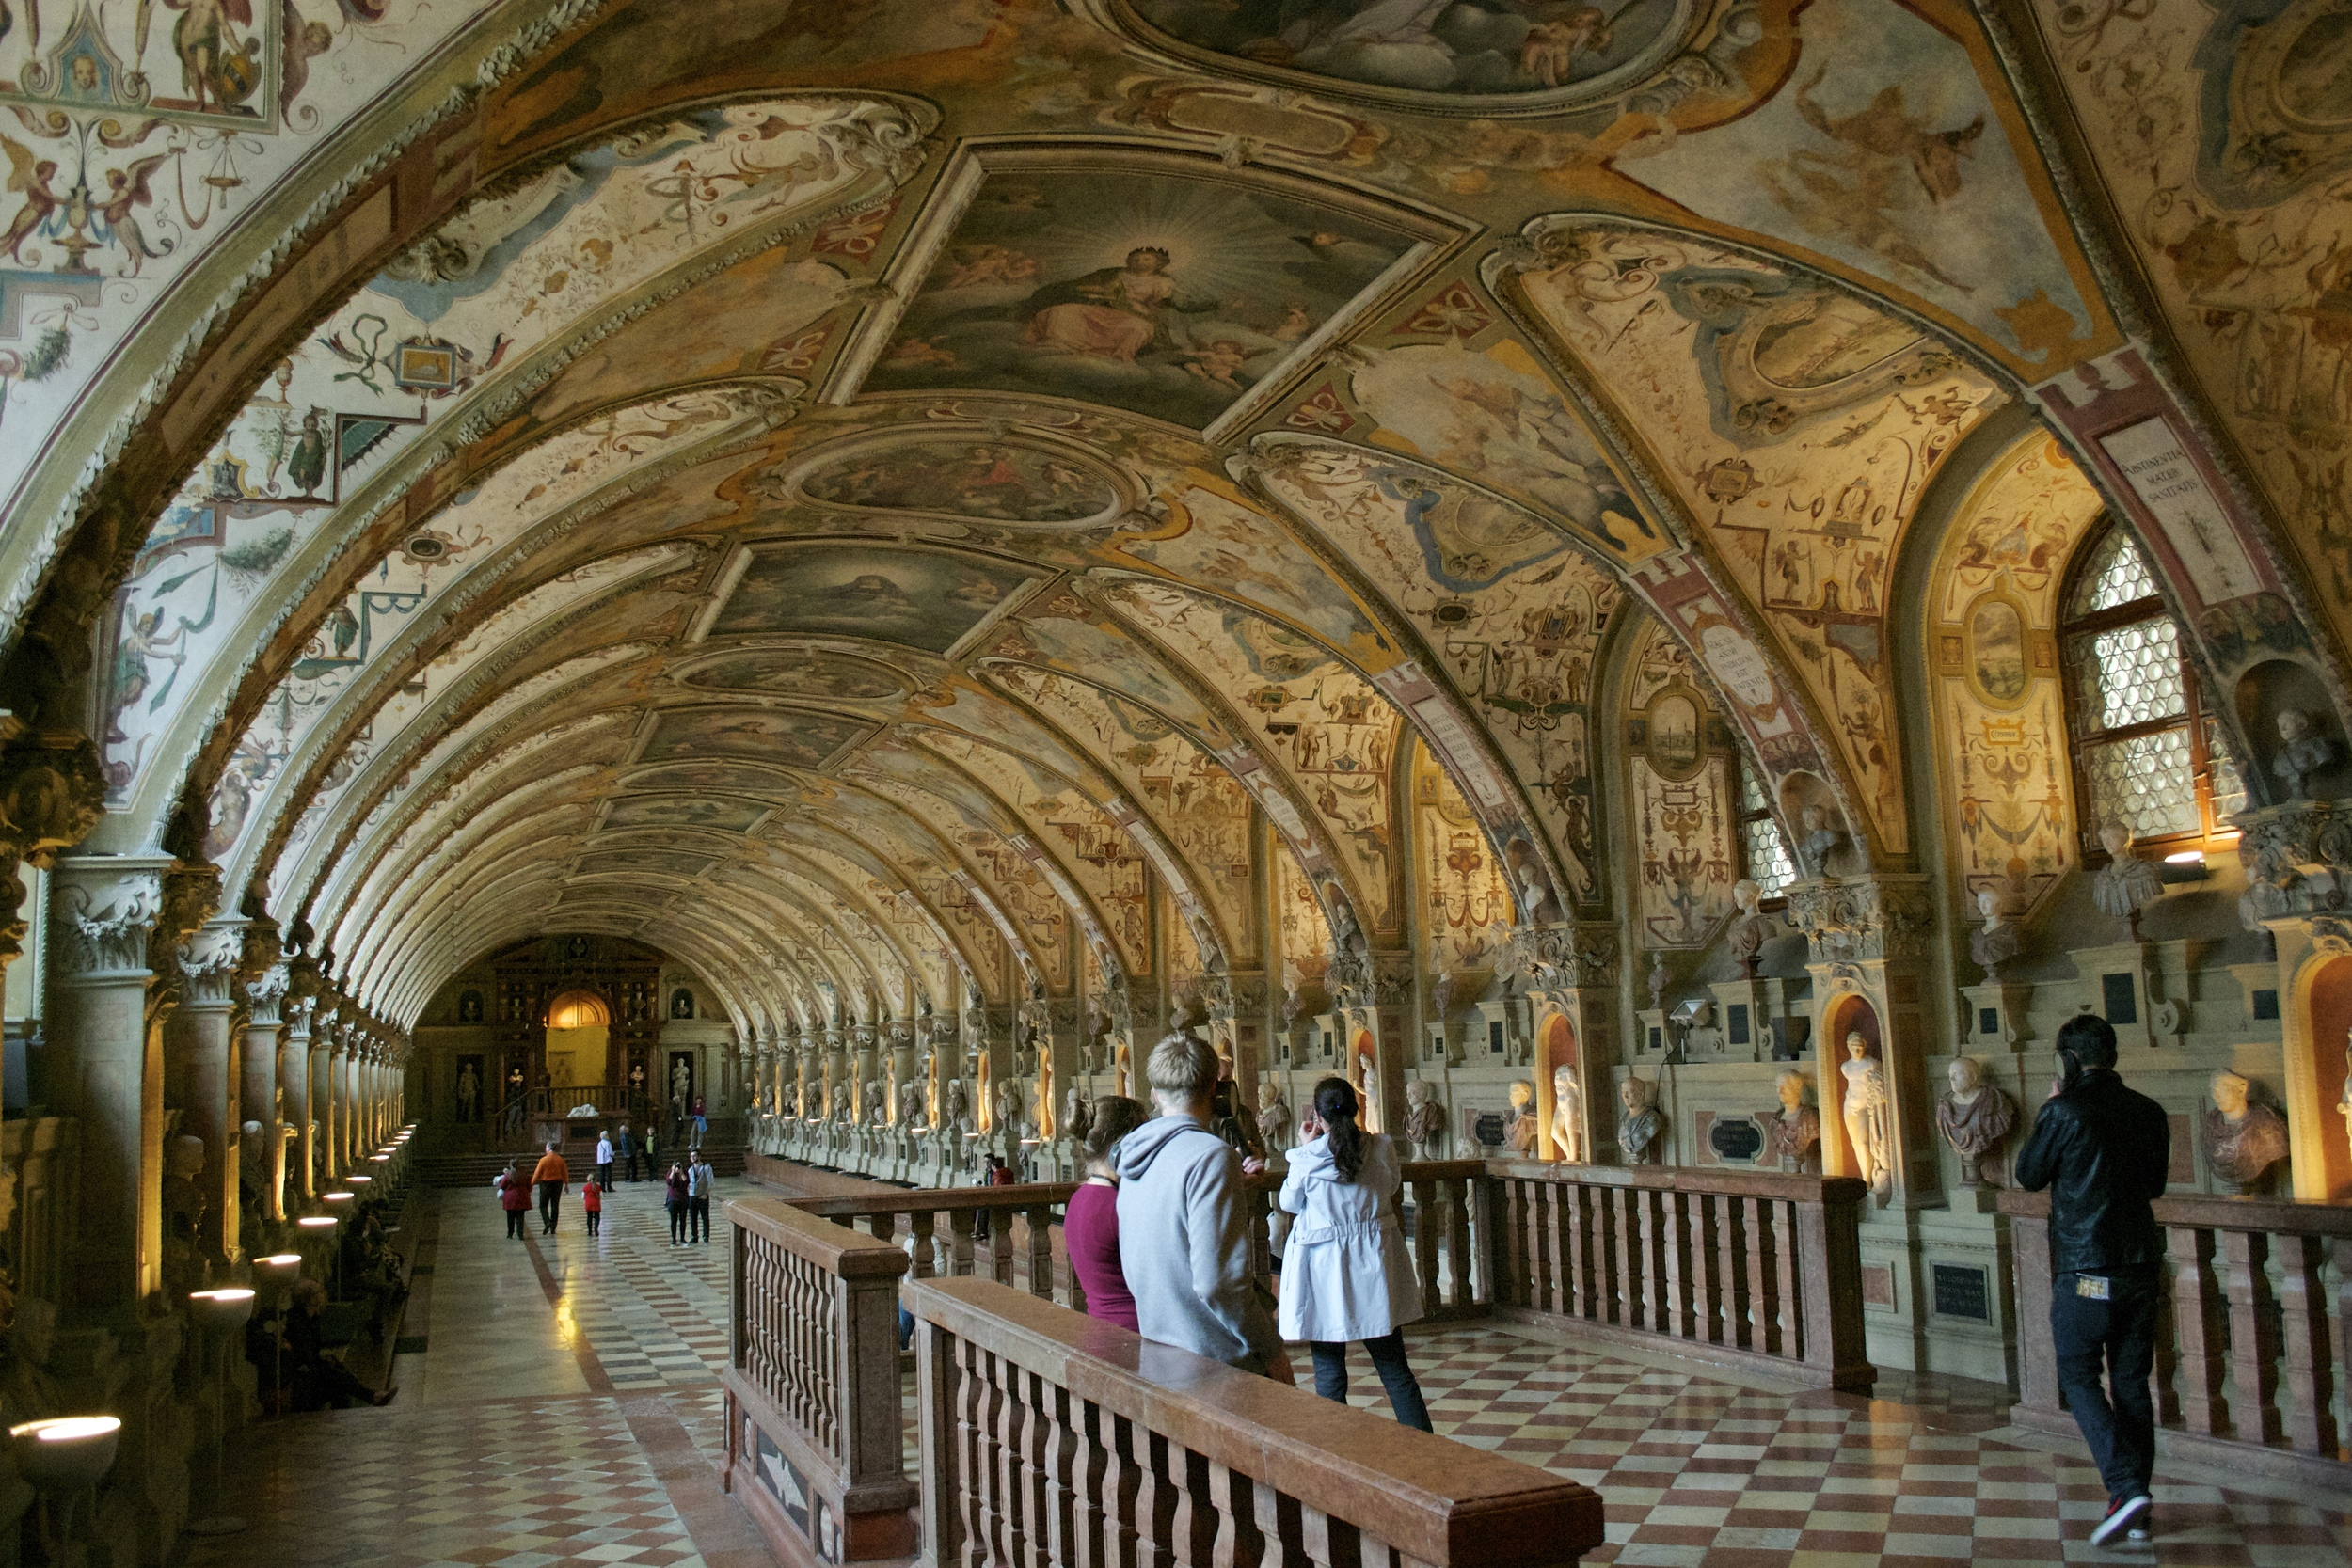 The Residenz's Antiquarium, full of classical busts and painted archways.